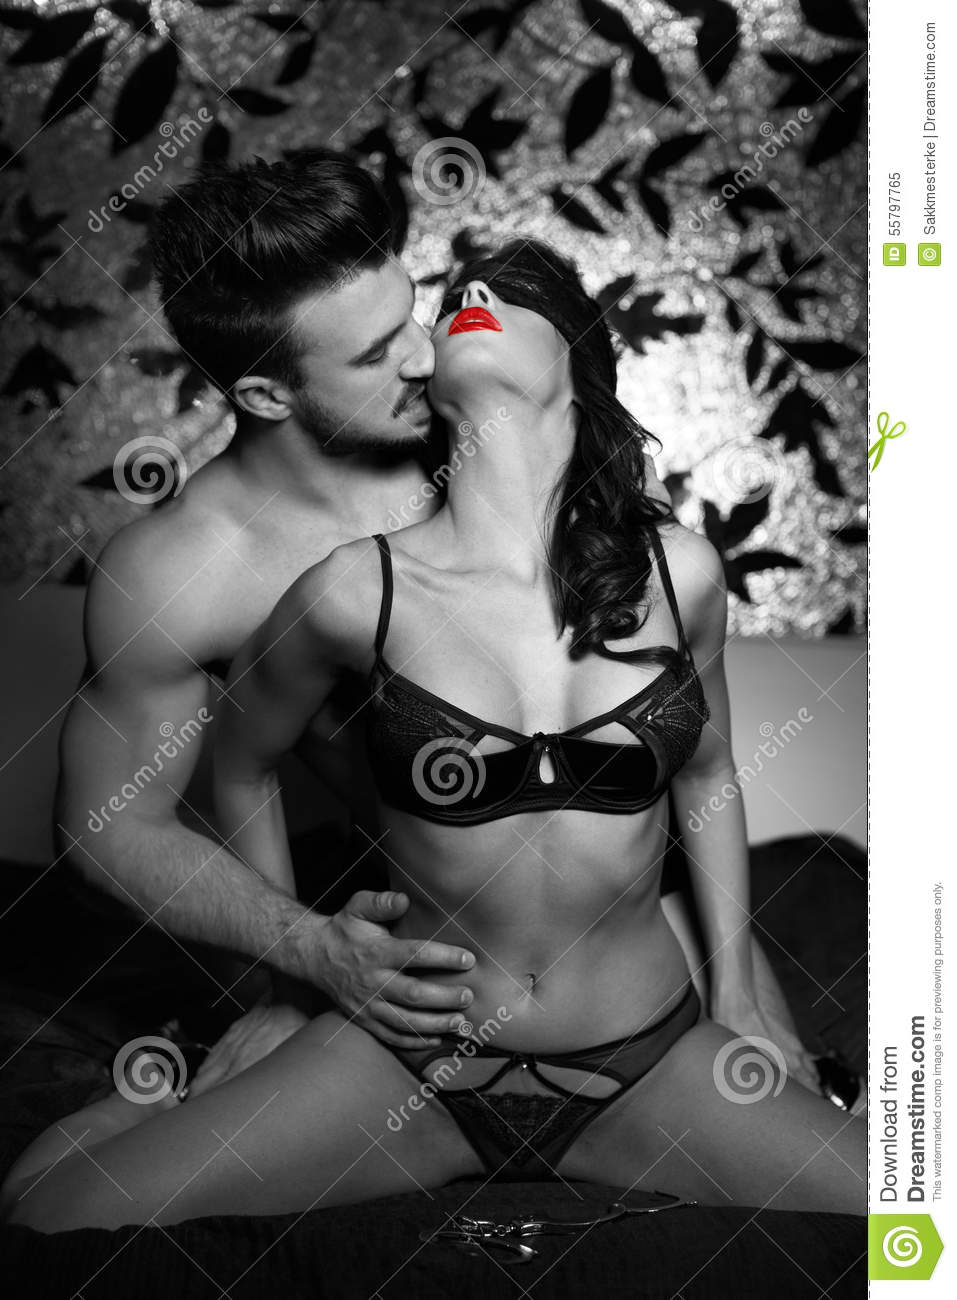 Erotic sensual couples black and white